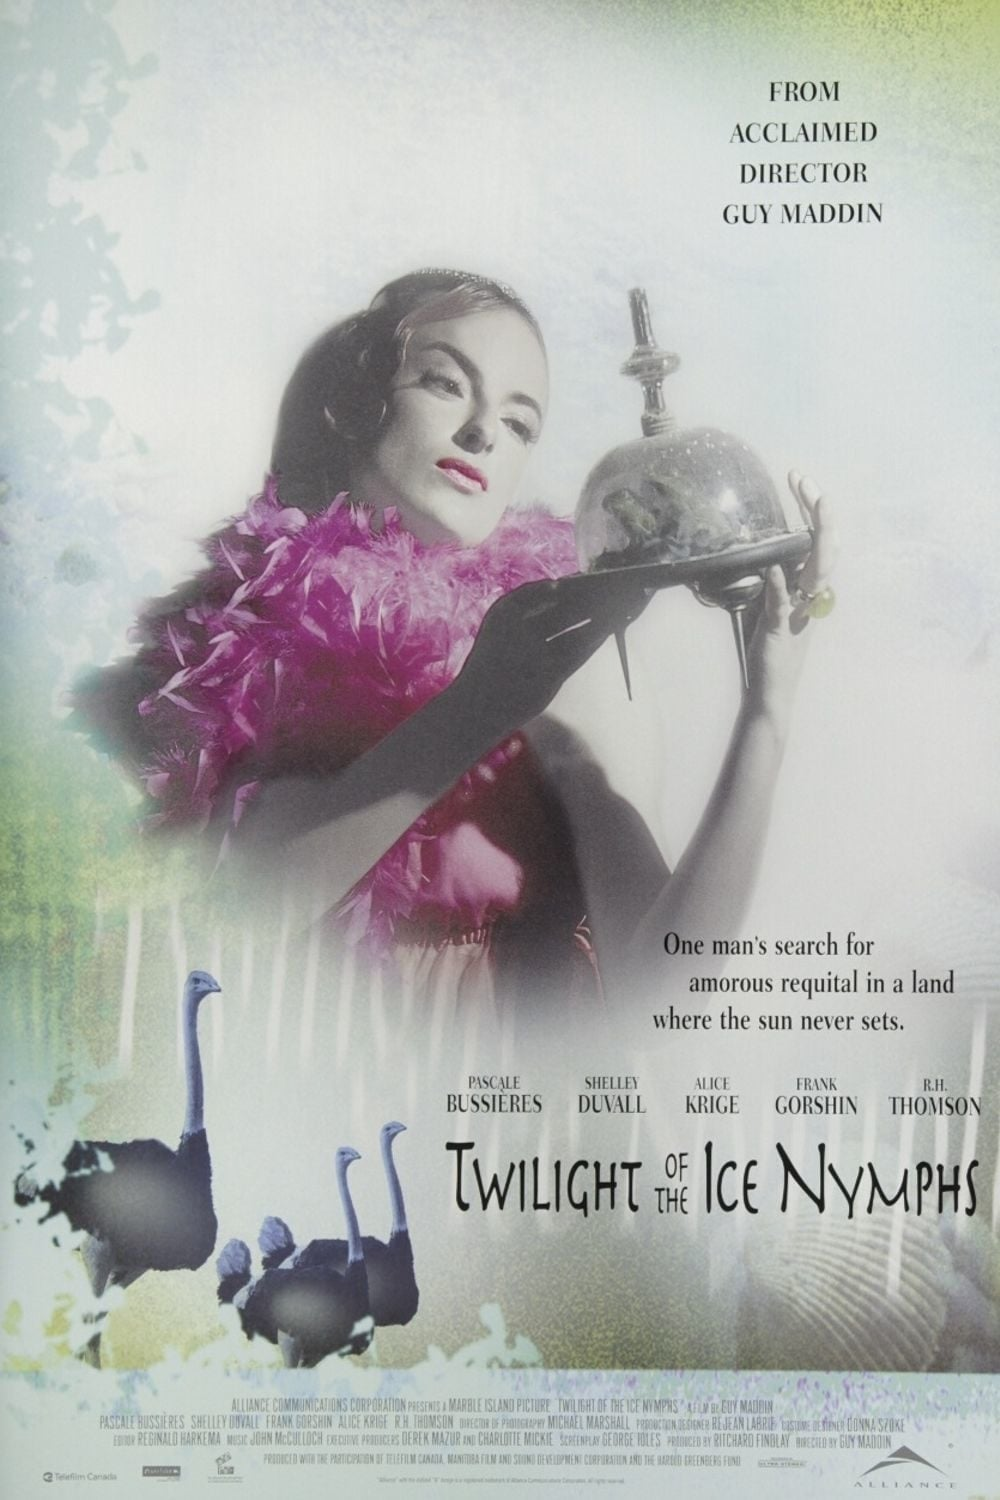 Twilight of the Ice Nymphs (1997)